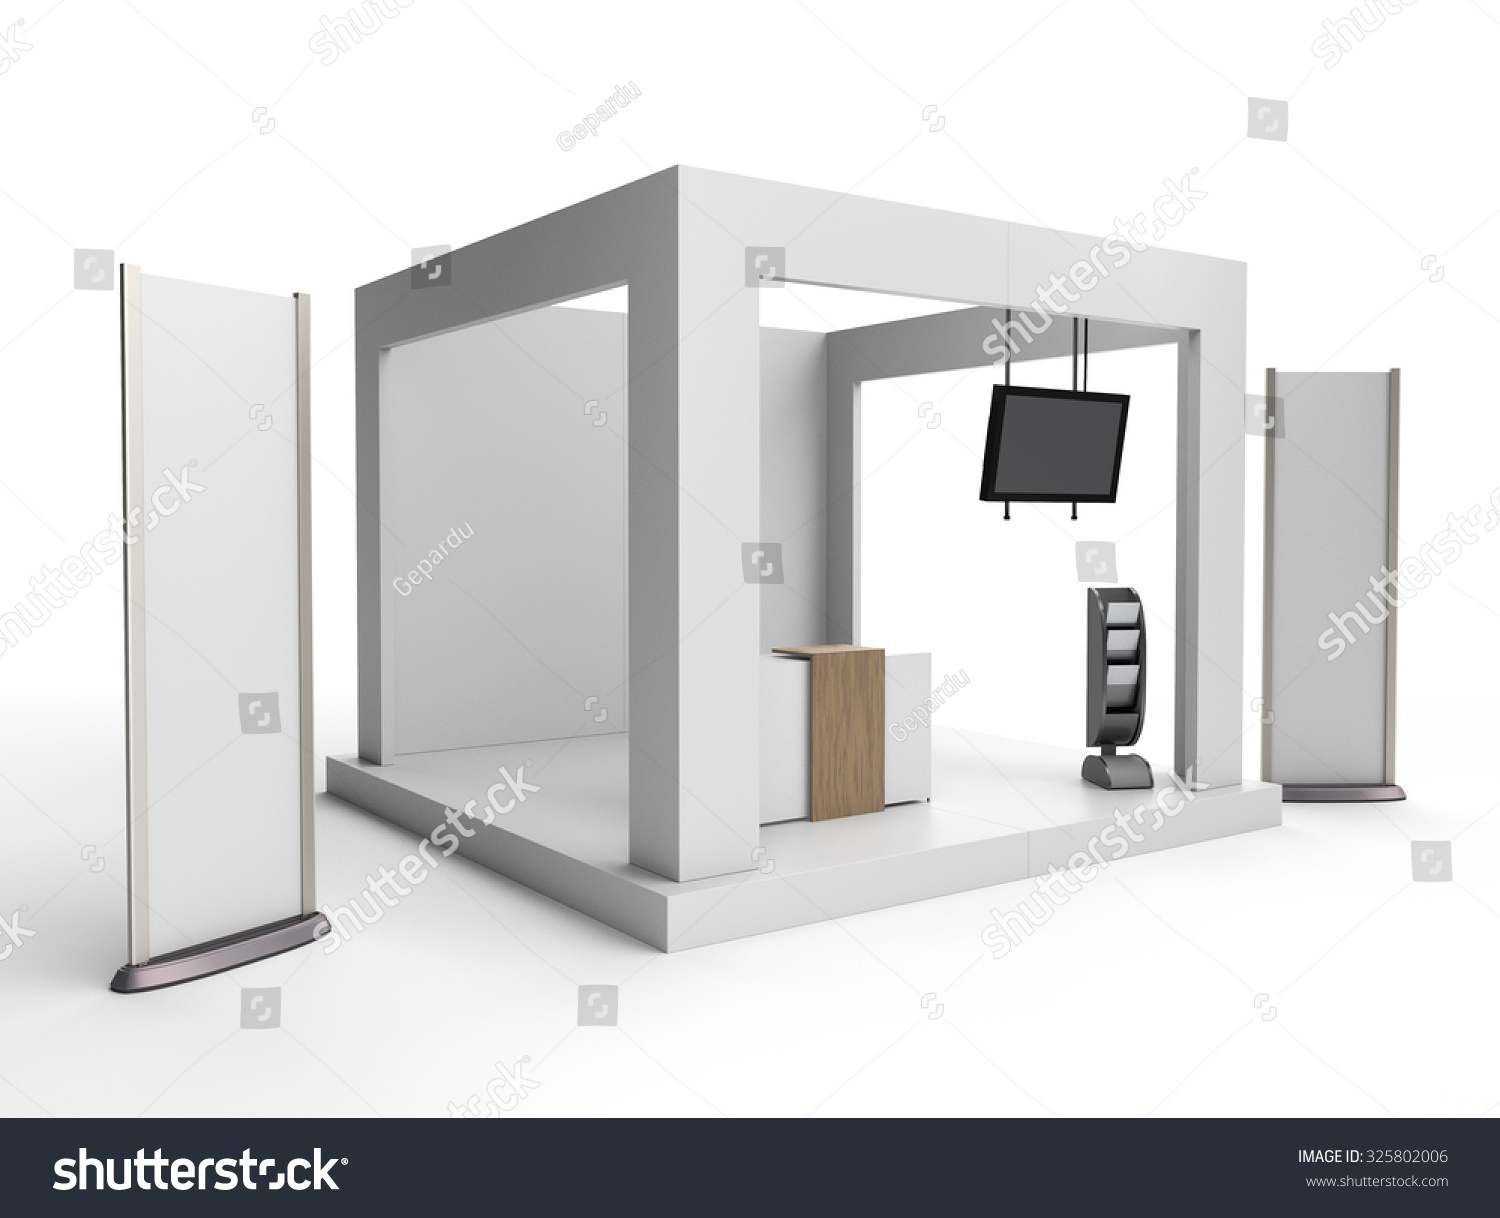 Exhibition Stand Tv : Blank stand design in exhibition or trade fair with tv